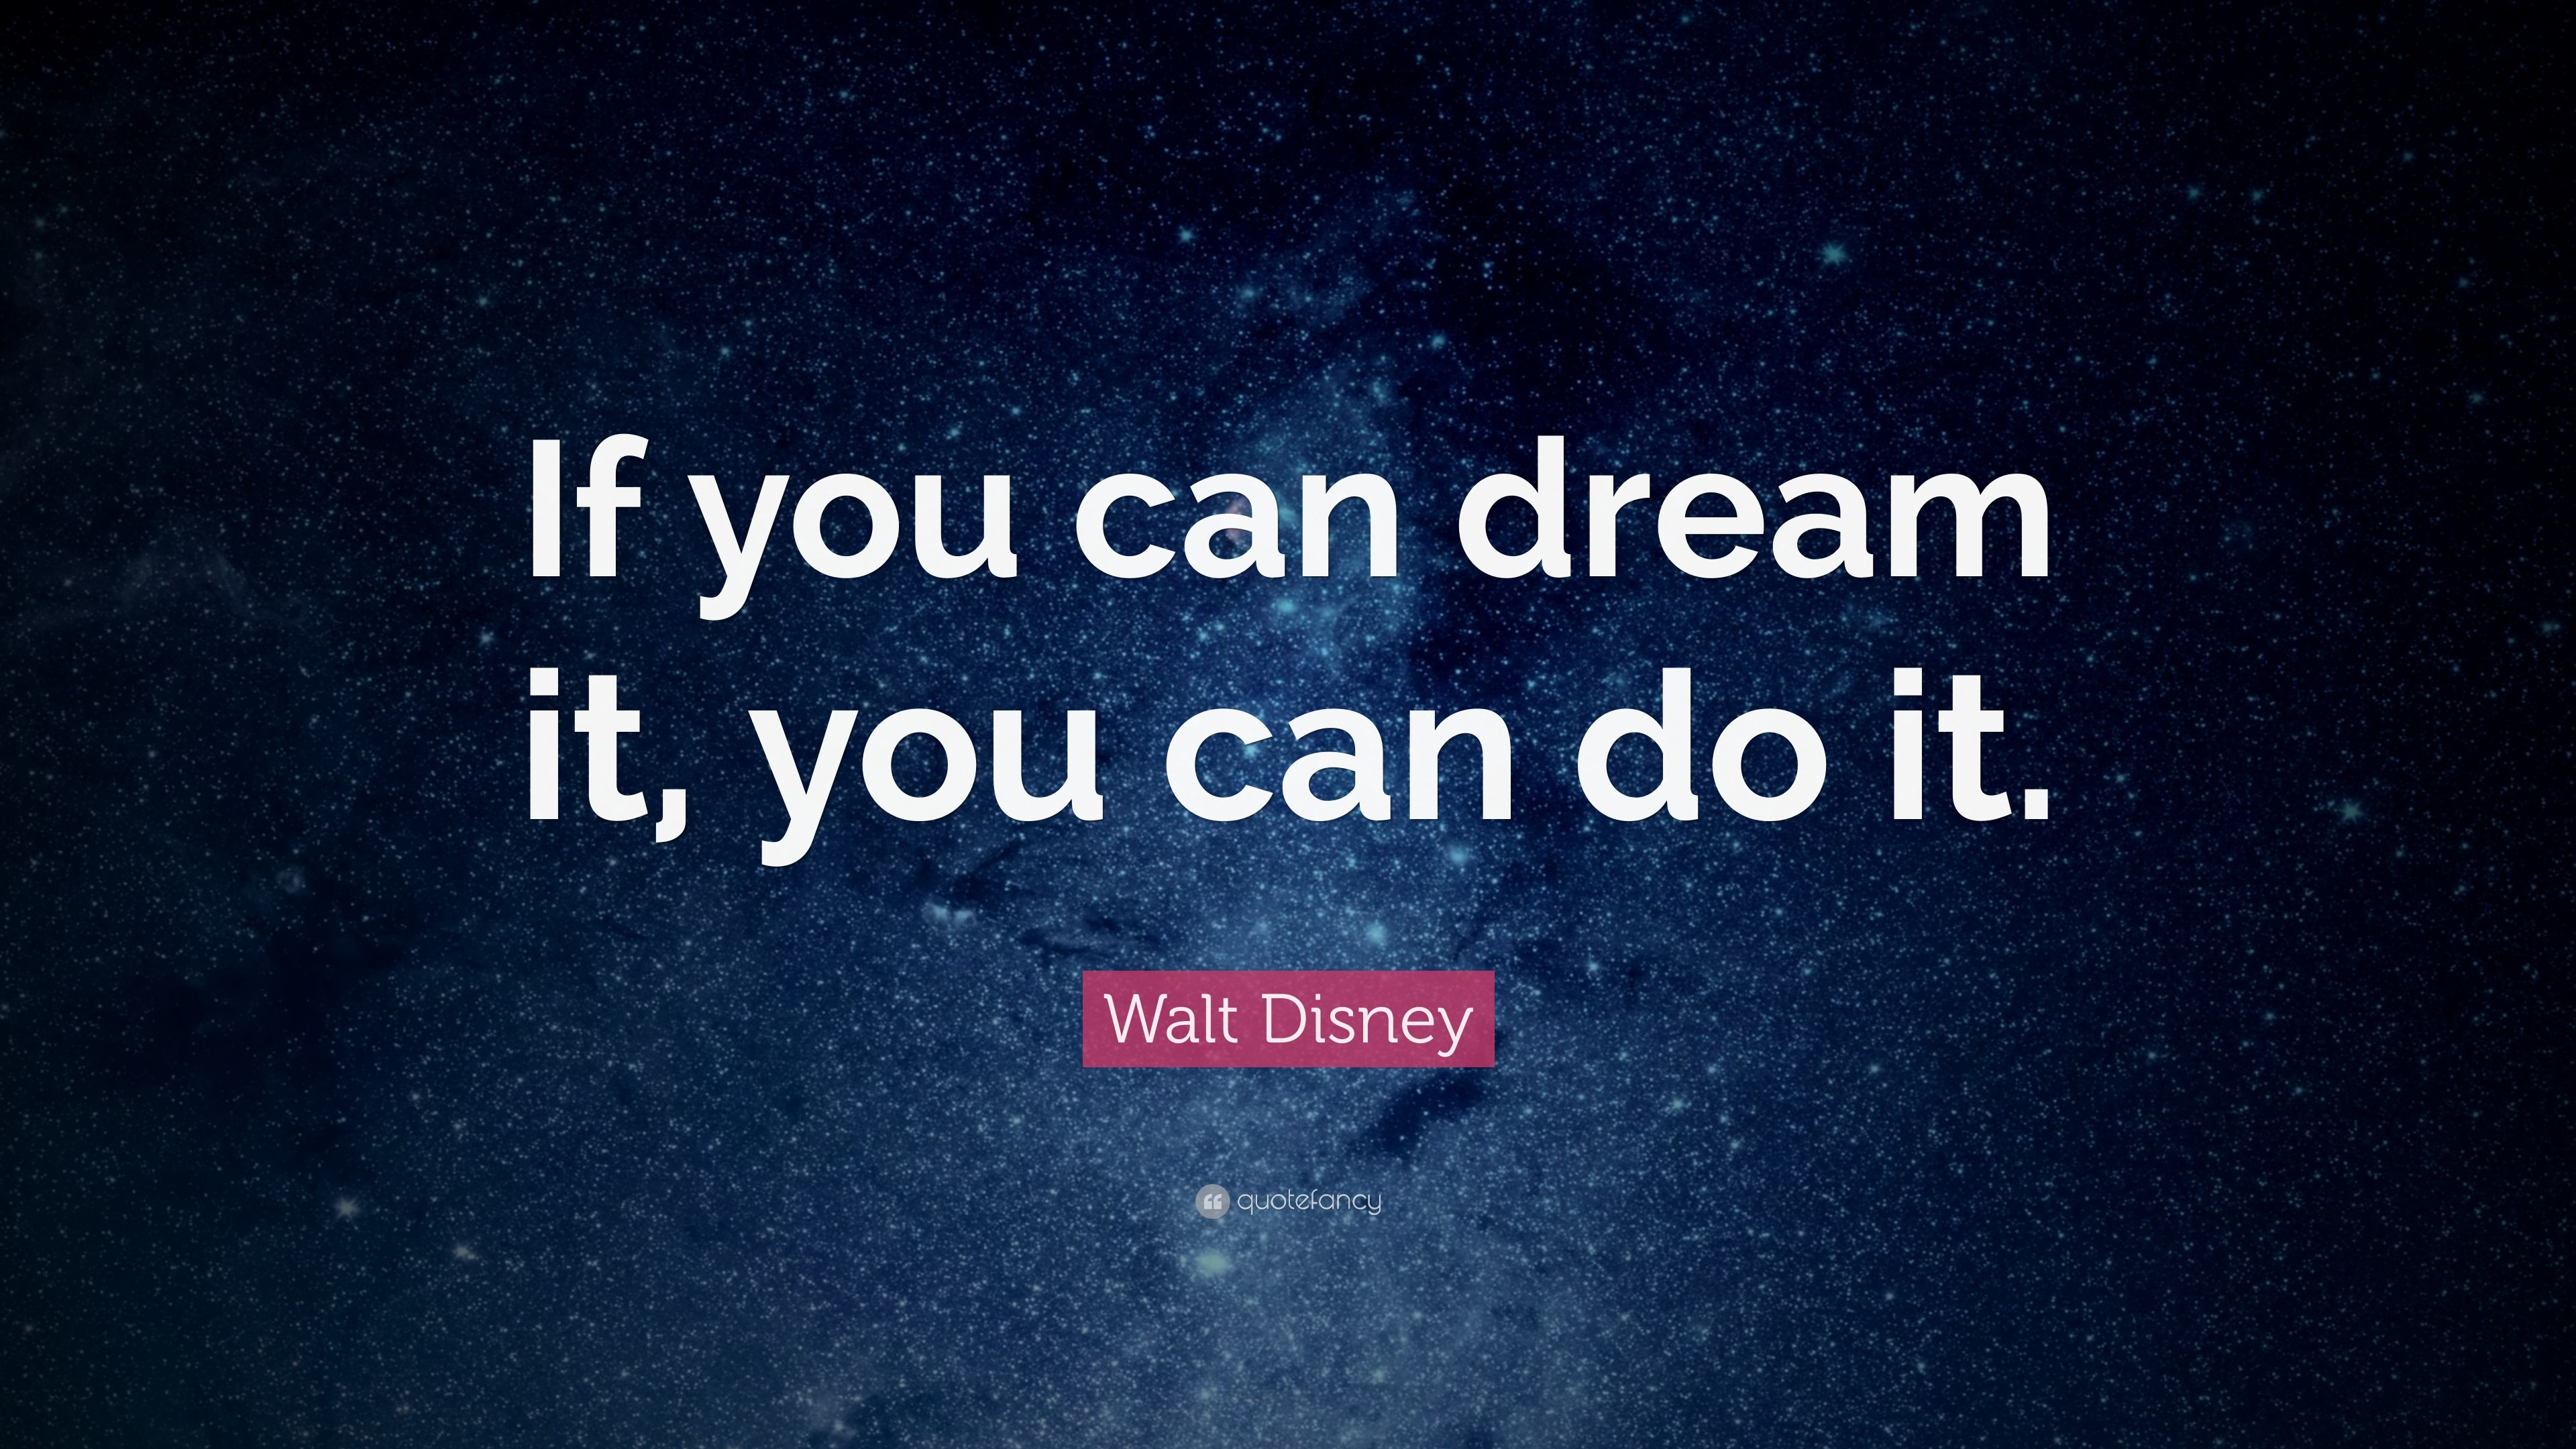 Disney quote iphone wallpaper 69 images for Where can i get wallpaper